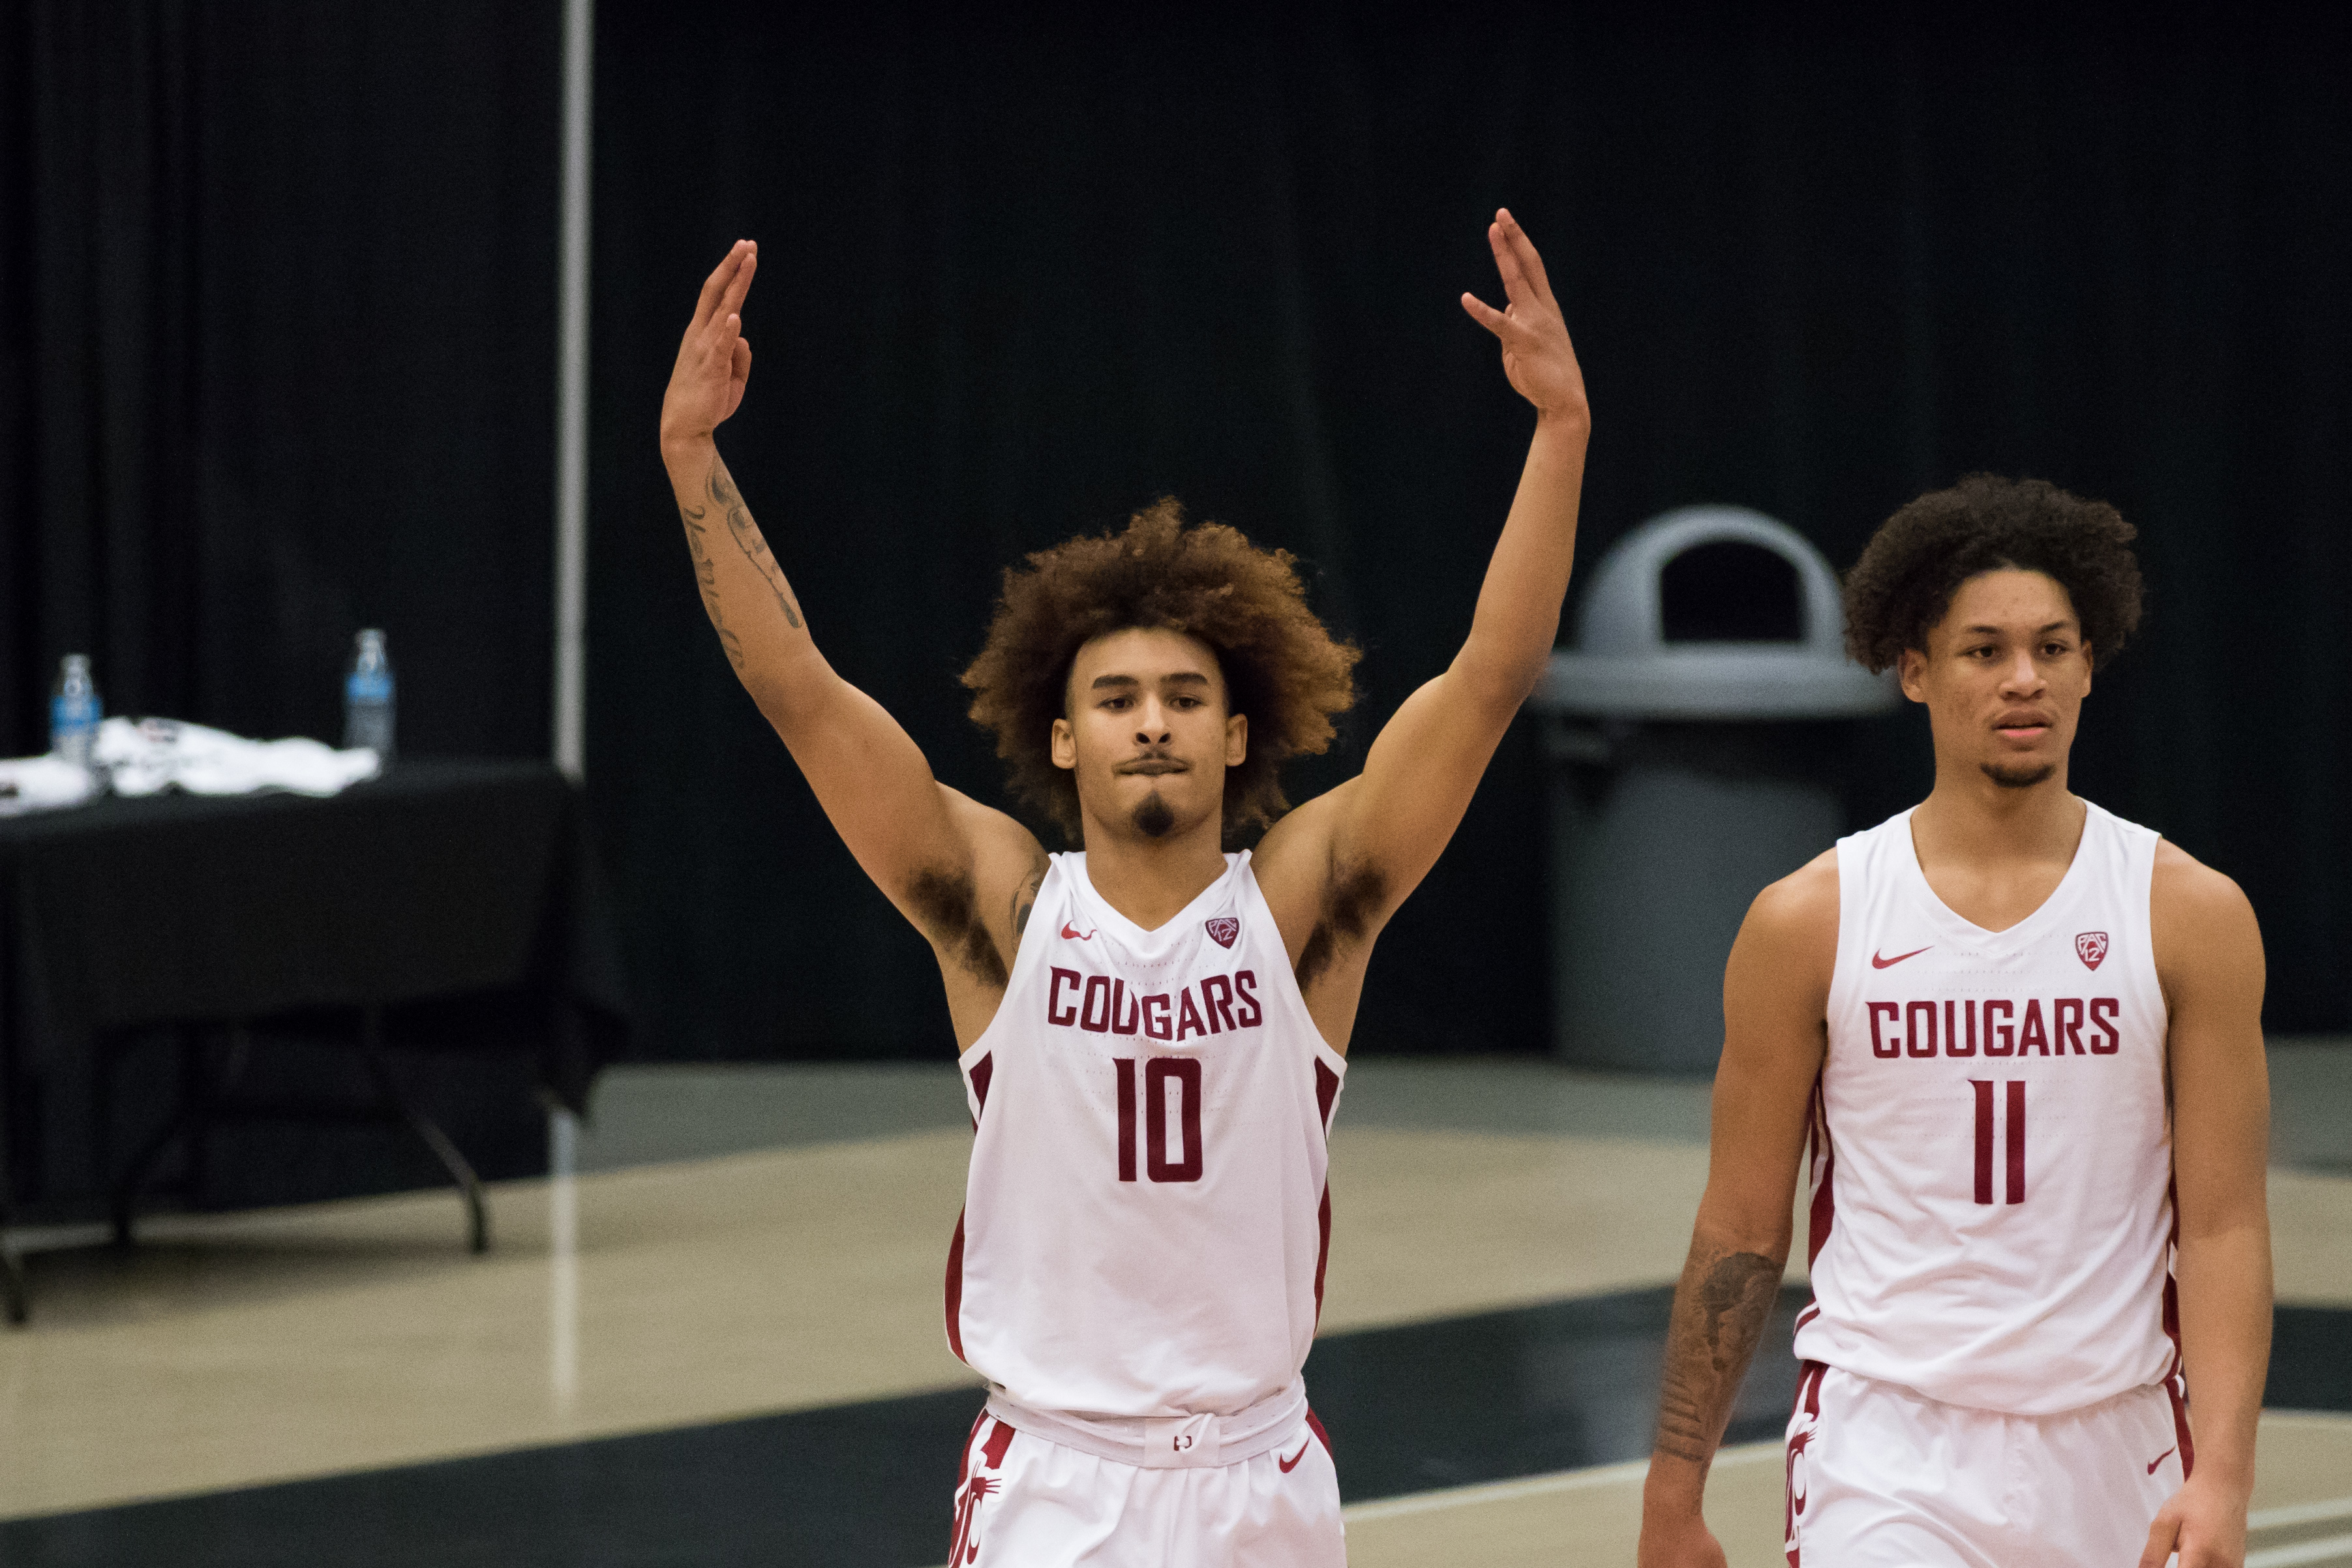 PULLMAN, WA - DECEMBER 2: Washington State guard Isaac Bonton (10) celebrates a 59-55 victory at the conclusion of the Pac 12 matchup between the Oregon State Beavers and the Washington State Cougars on December 2, 2020, at Beasley Coliseum in Pullman, WA.